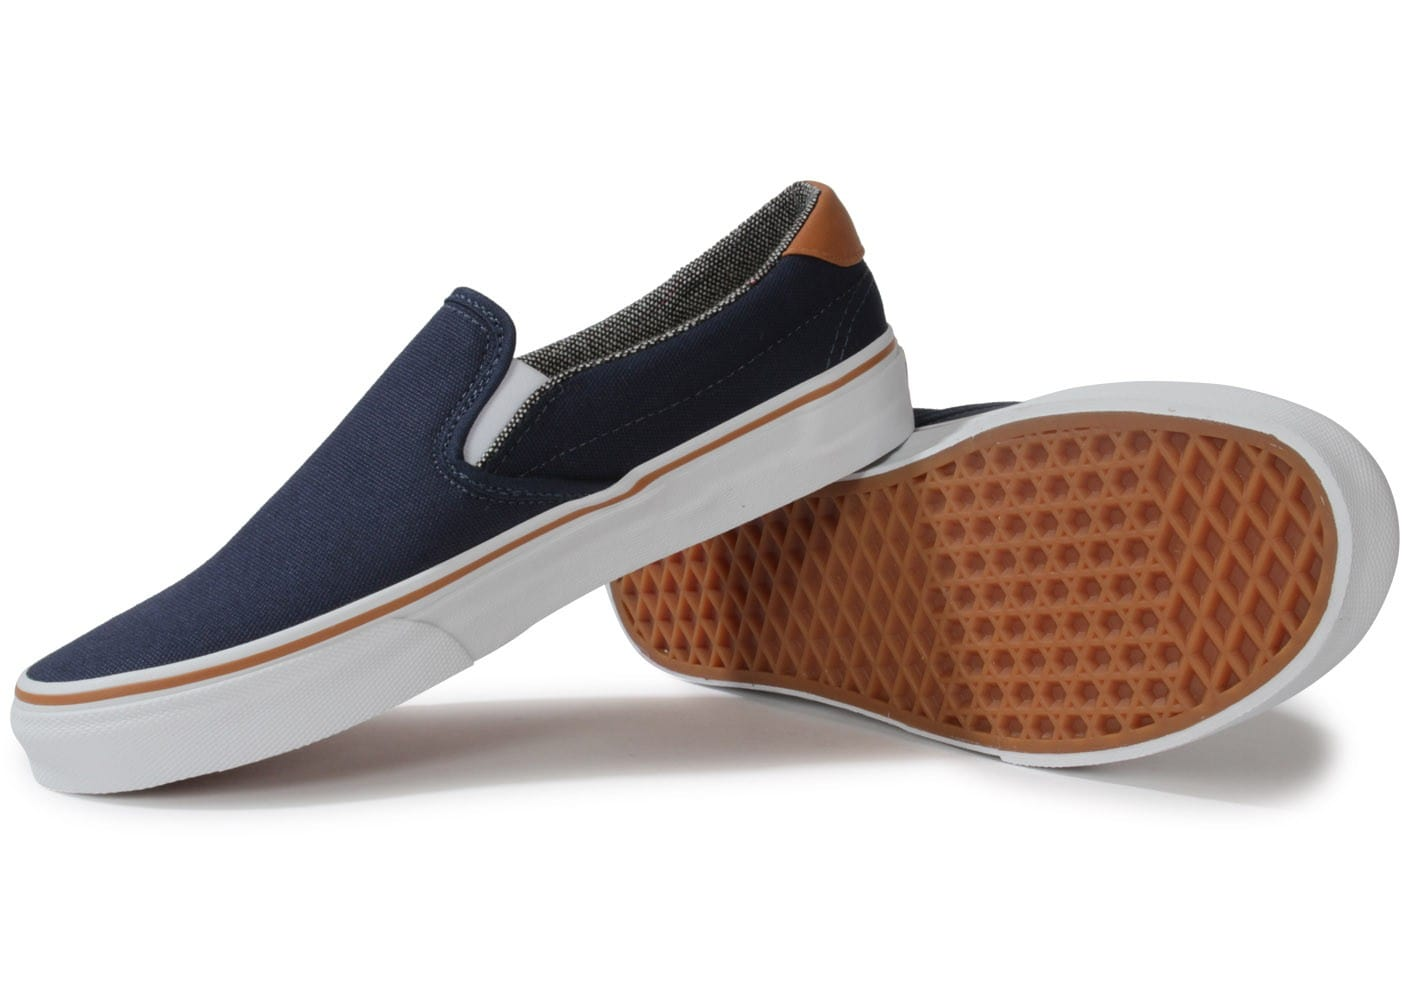 vans slip on 59 bleu marine chaussures homme chausport. Black Bedroom Furniture Sets. Home Design Ideas